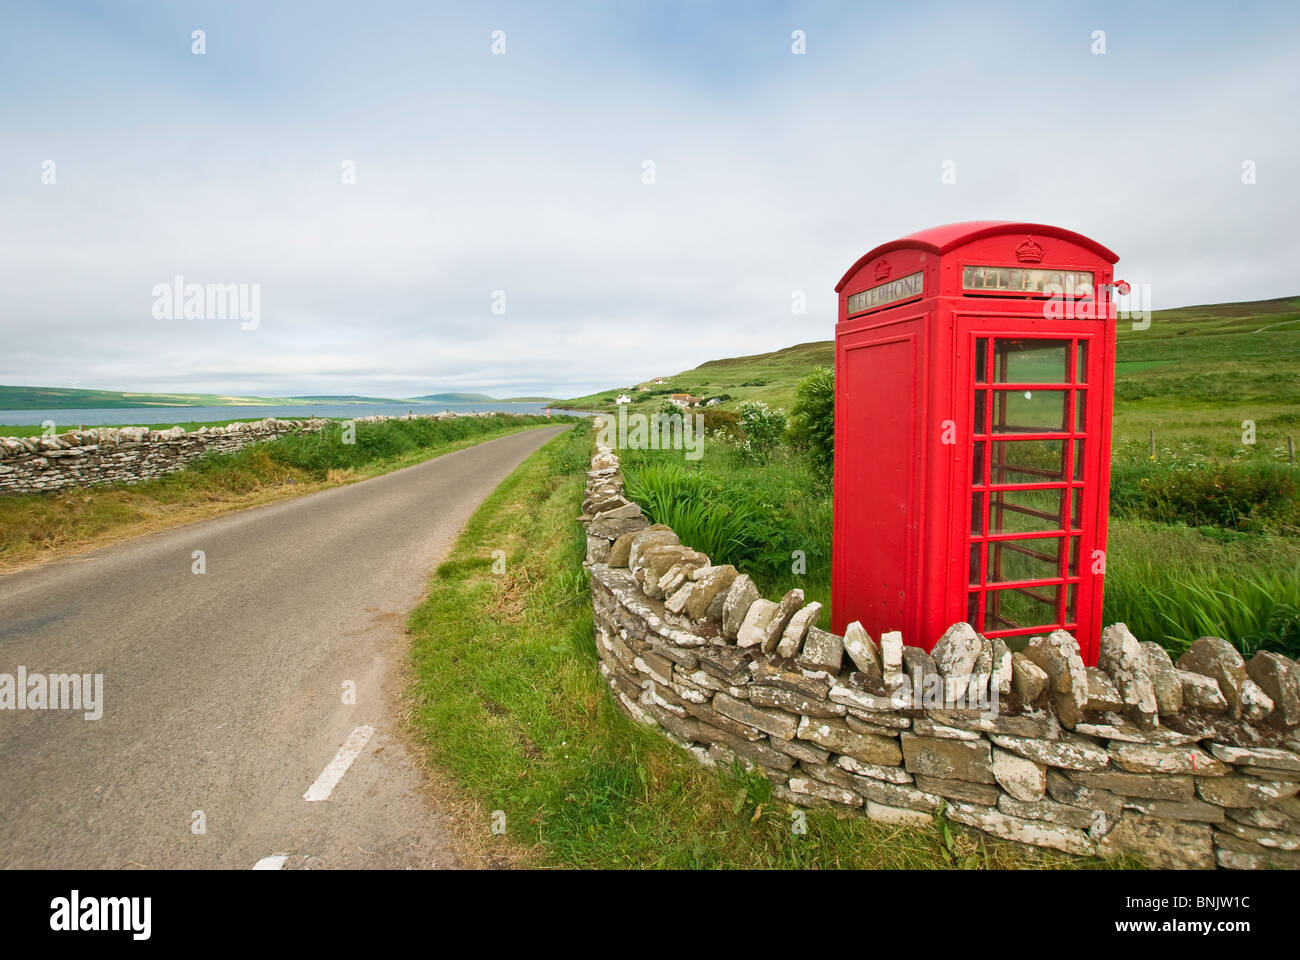 A typical British red telephone booth on the small isle of Rousay, Orkney. - Stock Image